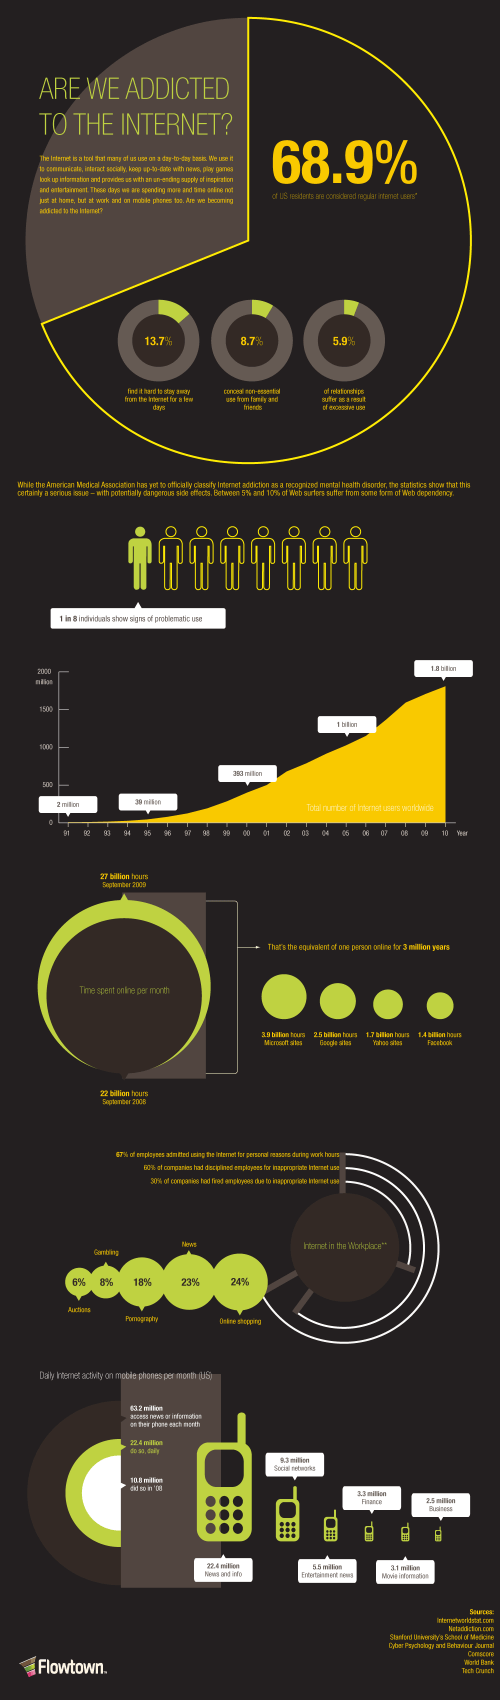 Internet Addiction Statistics Infographic